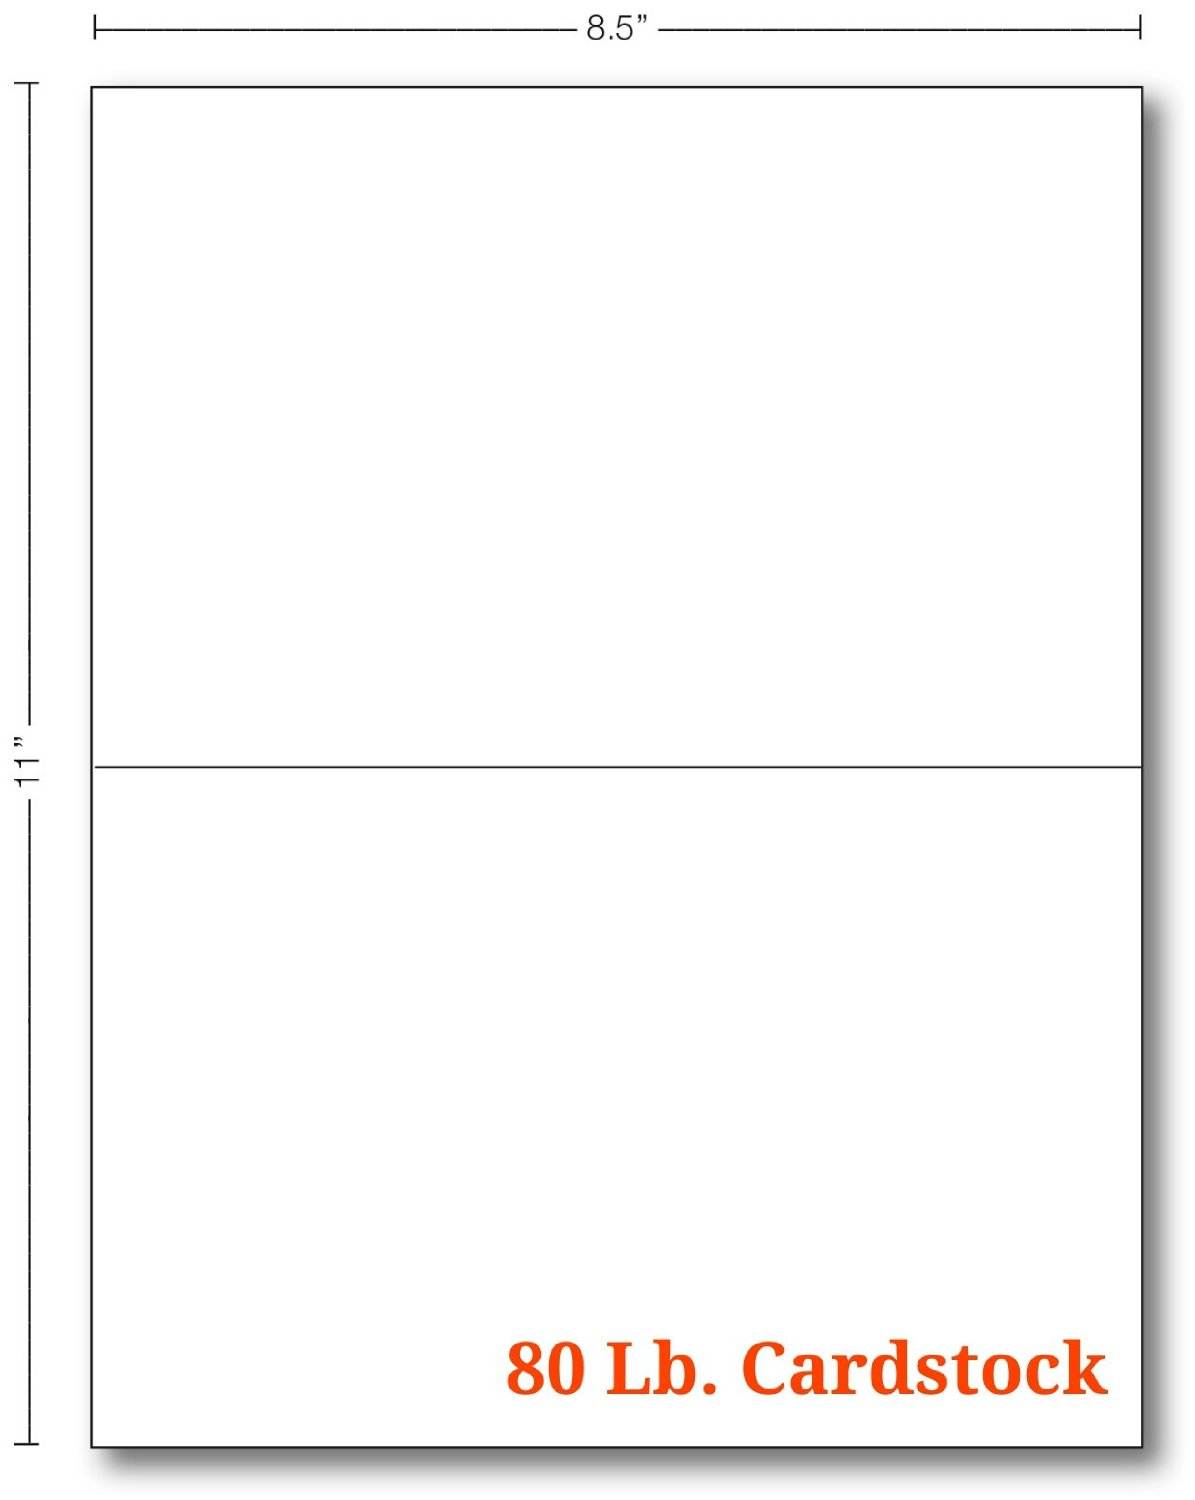 Cheap 3 fold cards find 3 fold cards deals on line at alibaba get quotations white half fold greeting cards 100 cards 55 x 85 inches when folded m4hsunfo